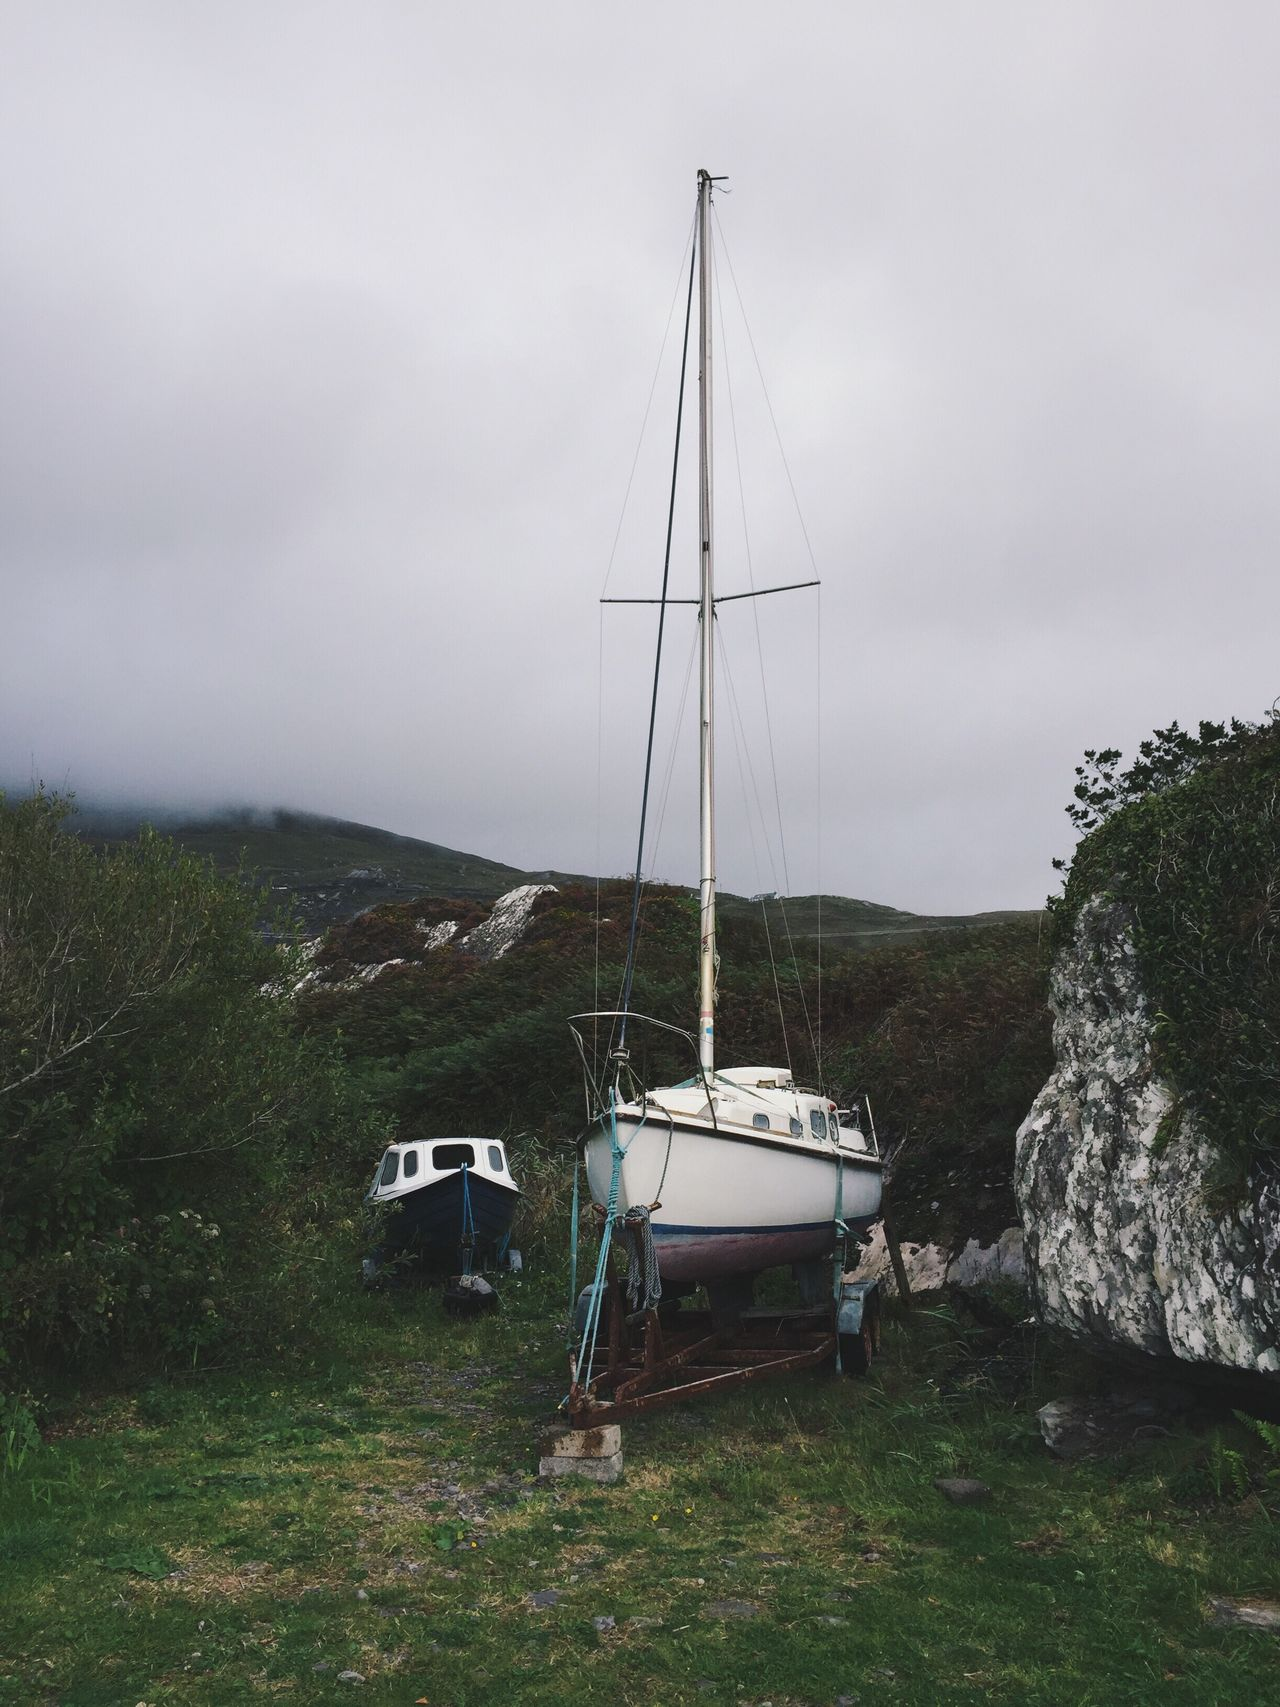 Boats Sky Outdoors Tranquility Tranquil Scene Beauty In Nature Nature No People Scenics Mountain Landscape Mode Of Transport Day Grass Tree Cloud - Sky Nautical Vessel Mast Ship Boat Yacht Ireland